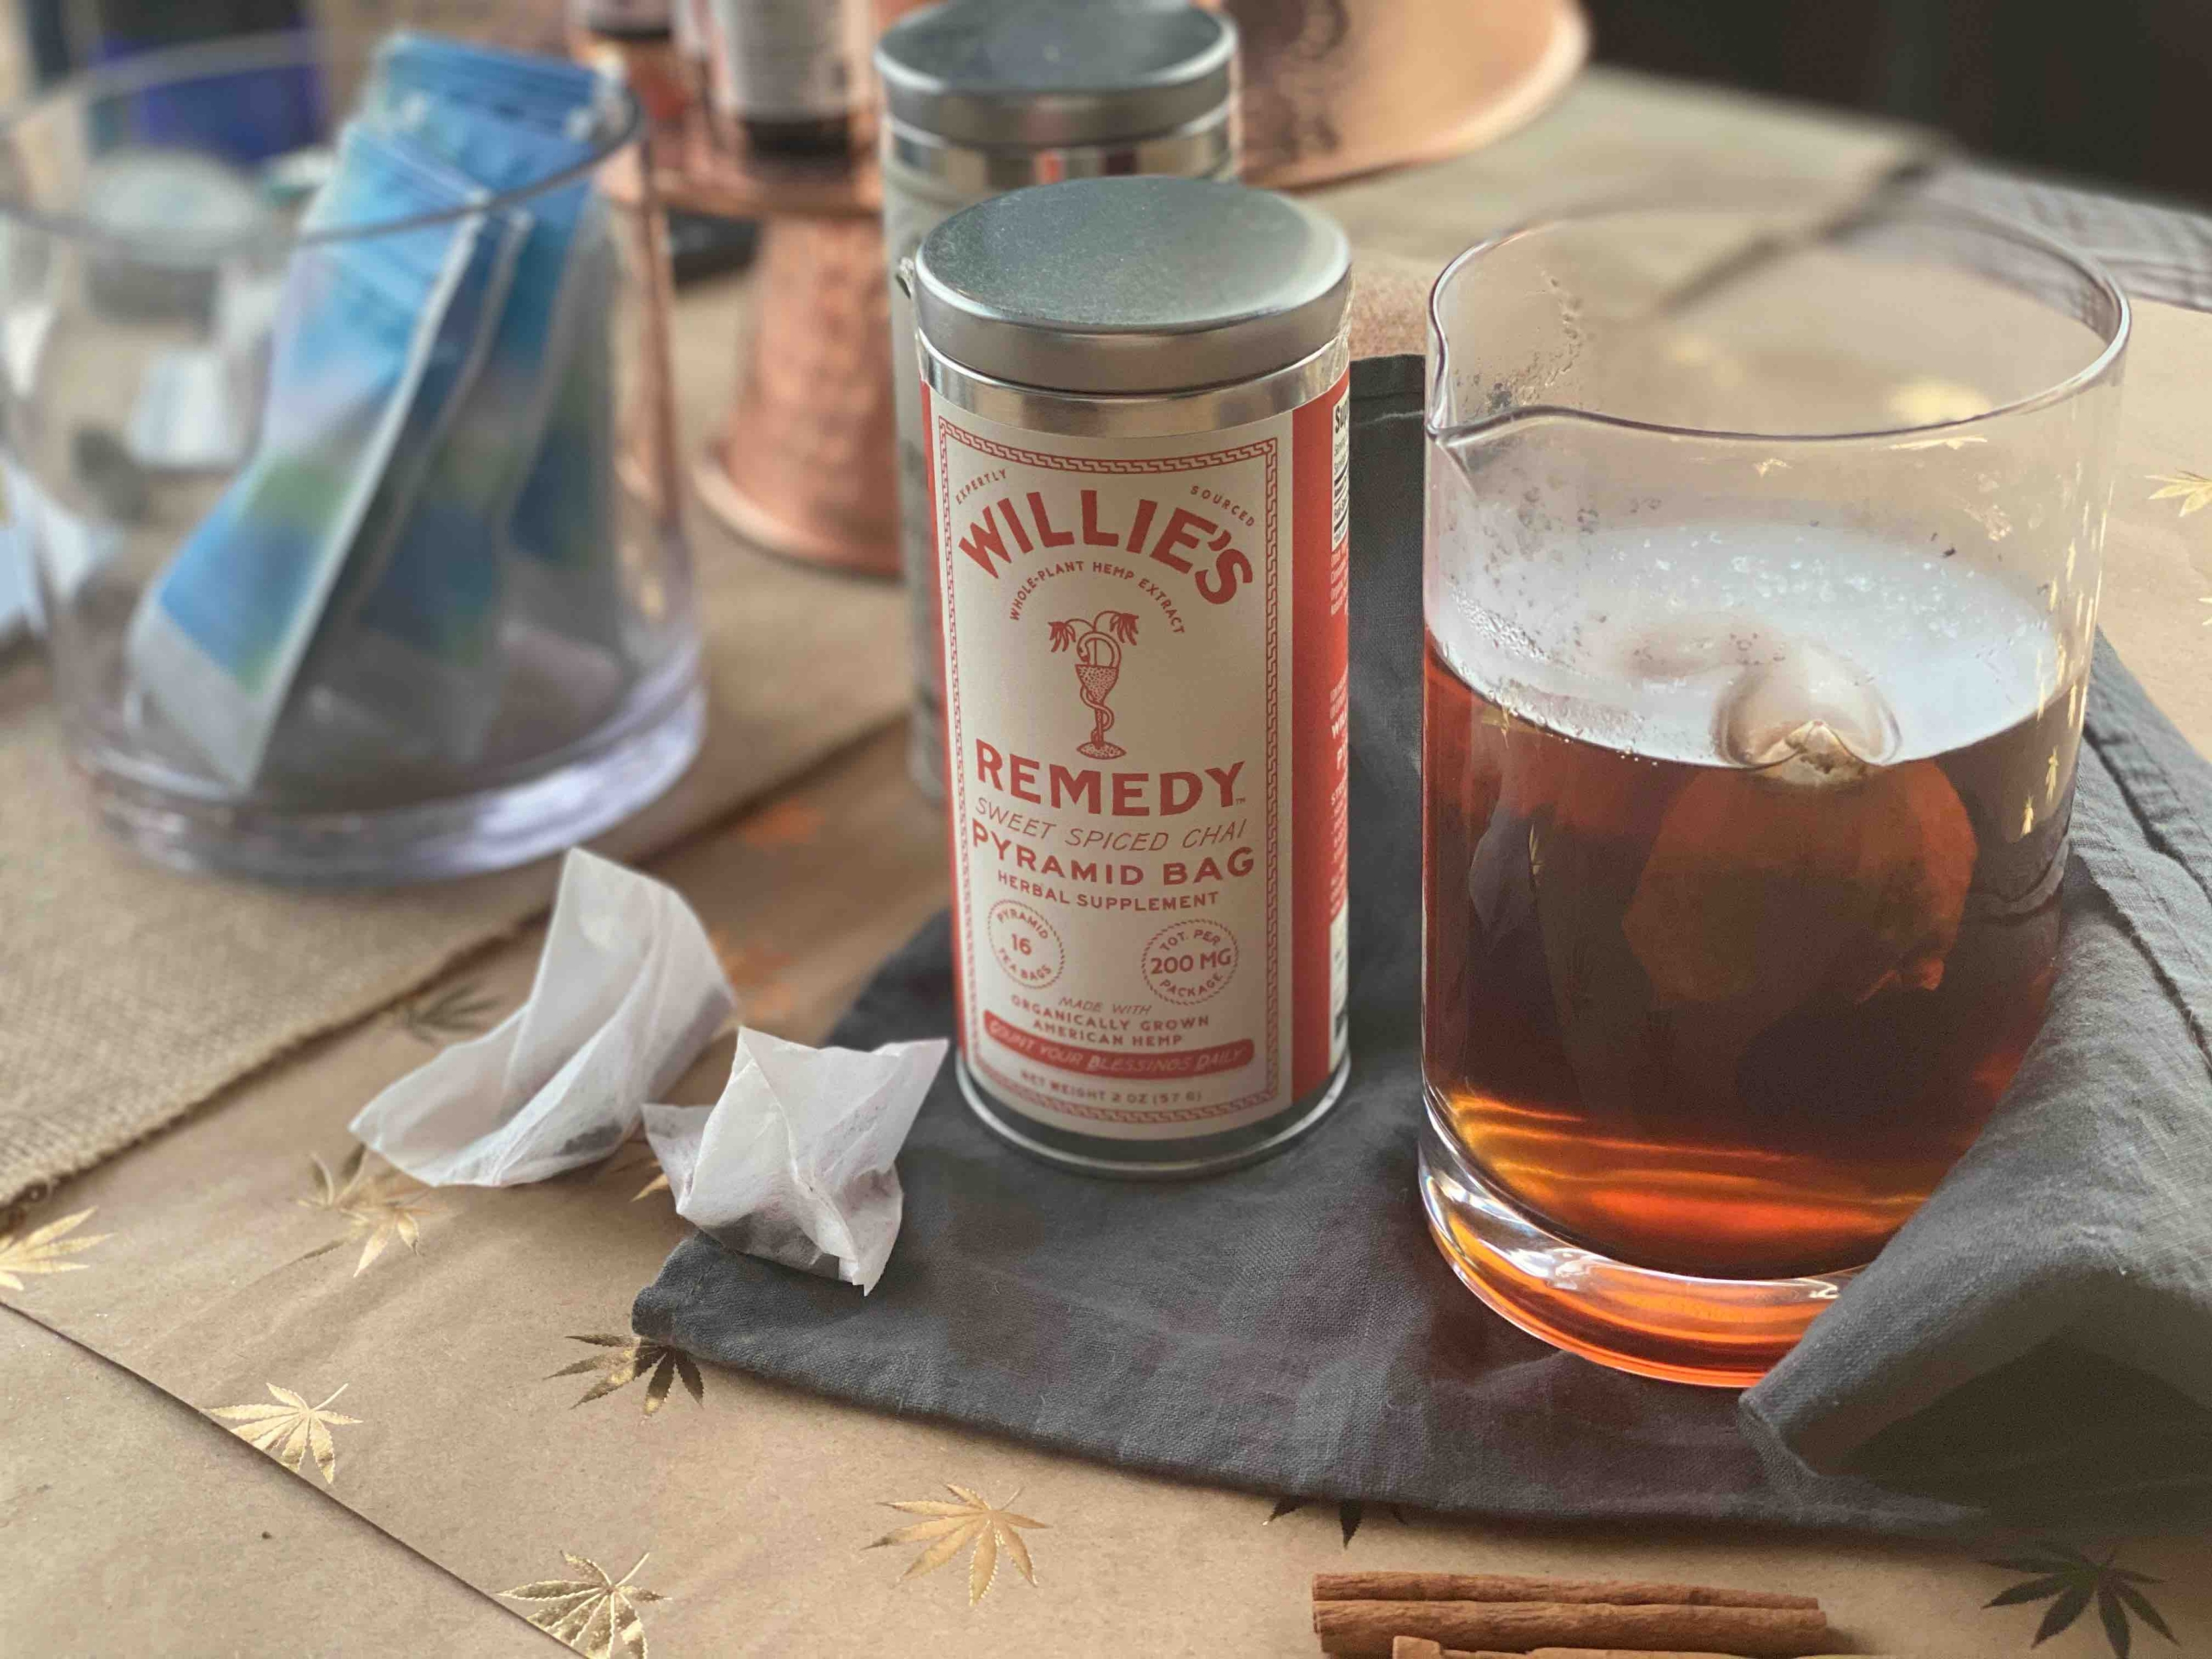 Willie's Remedy Tea To Enhance Your Cannabis Experience